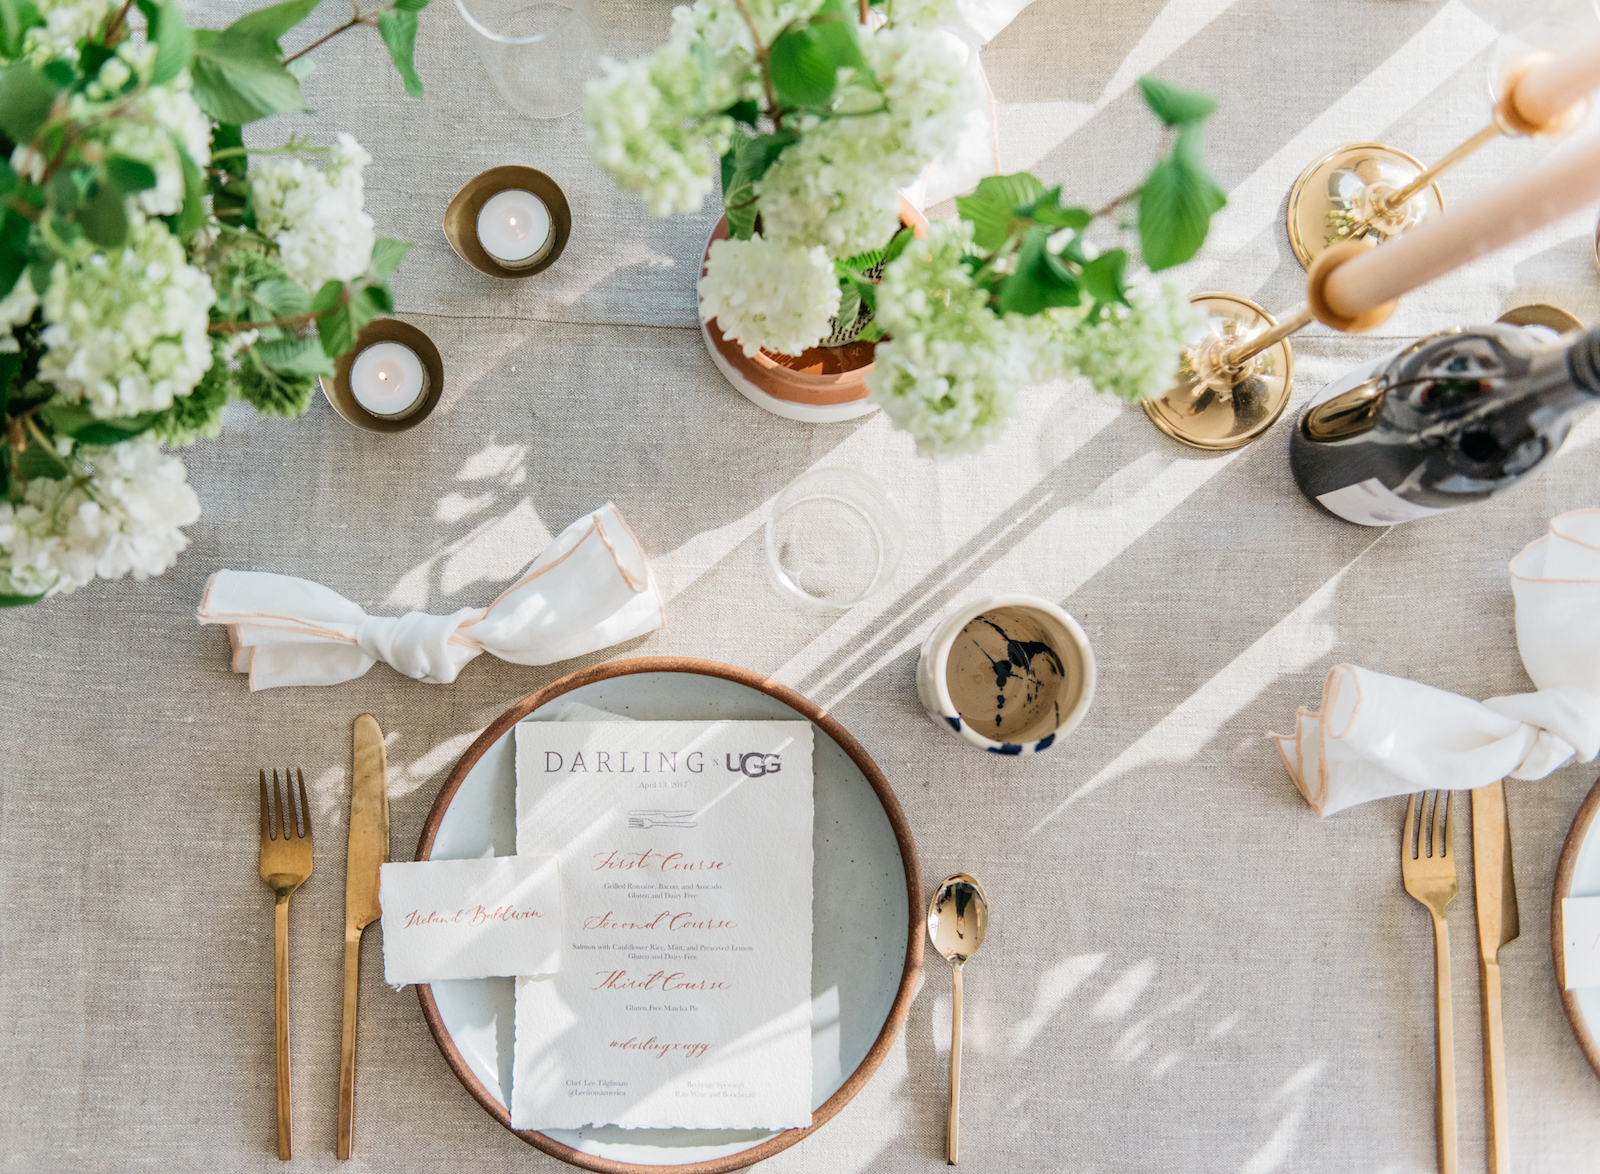 Be Our Guest: The Darling x UGG Dinner